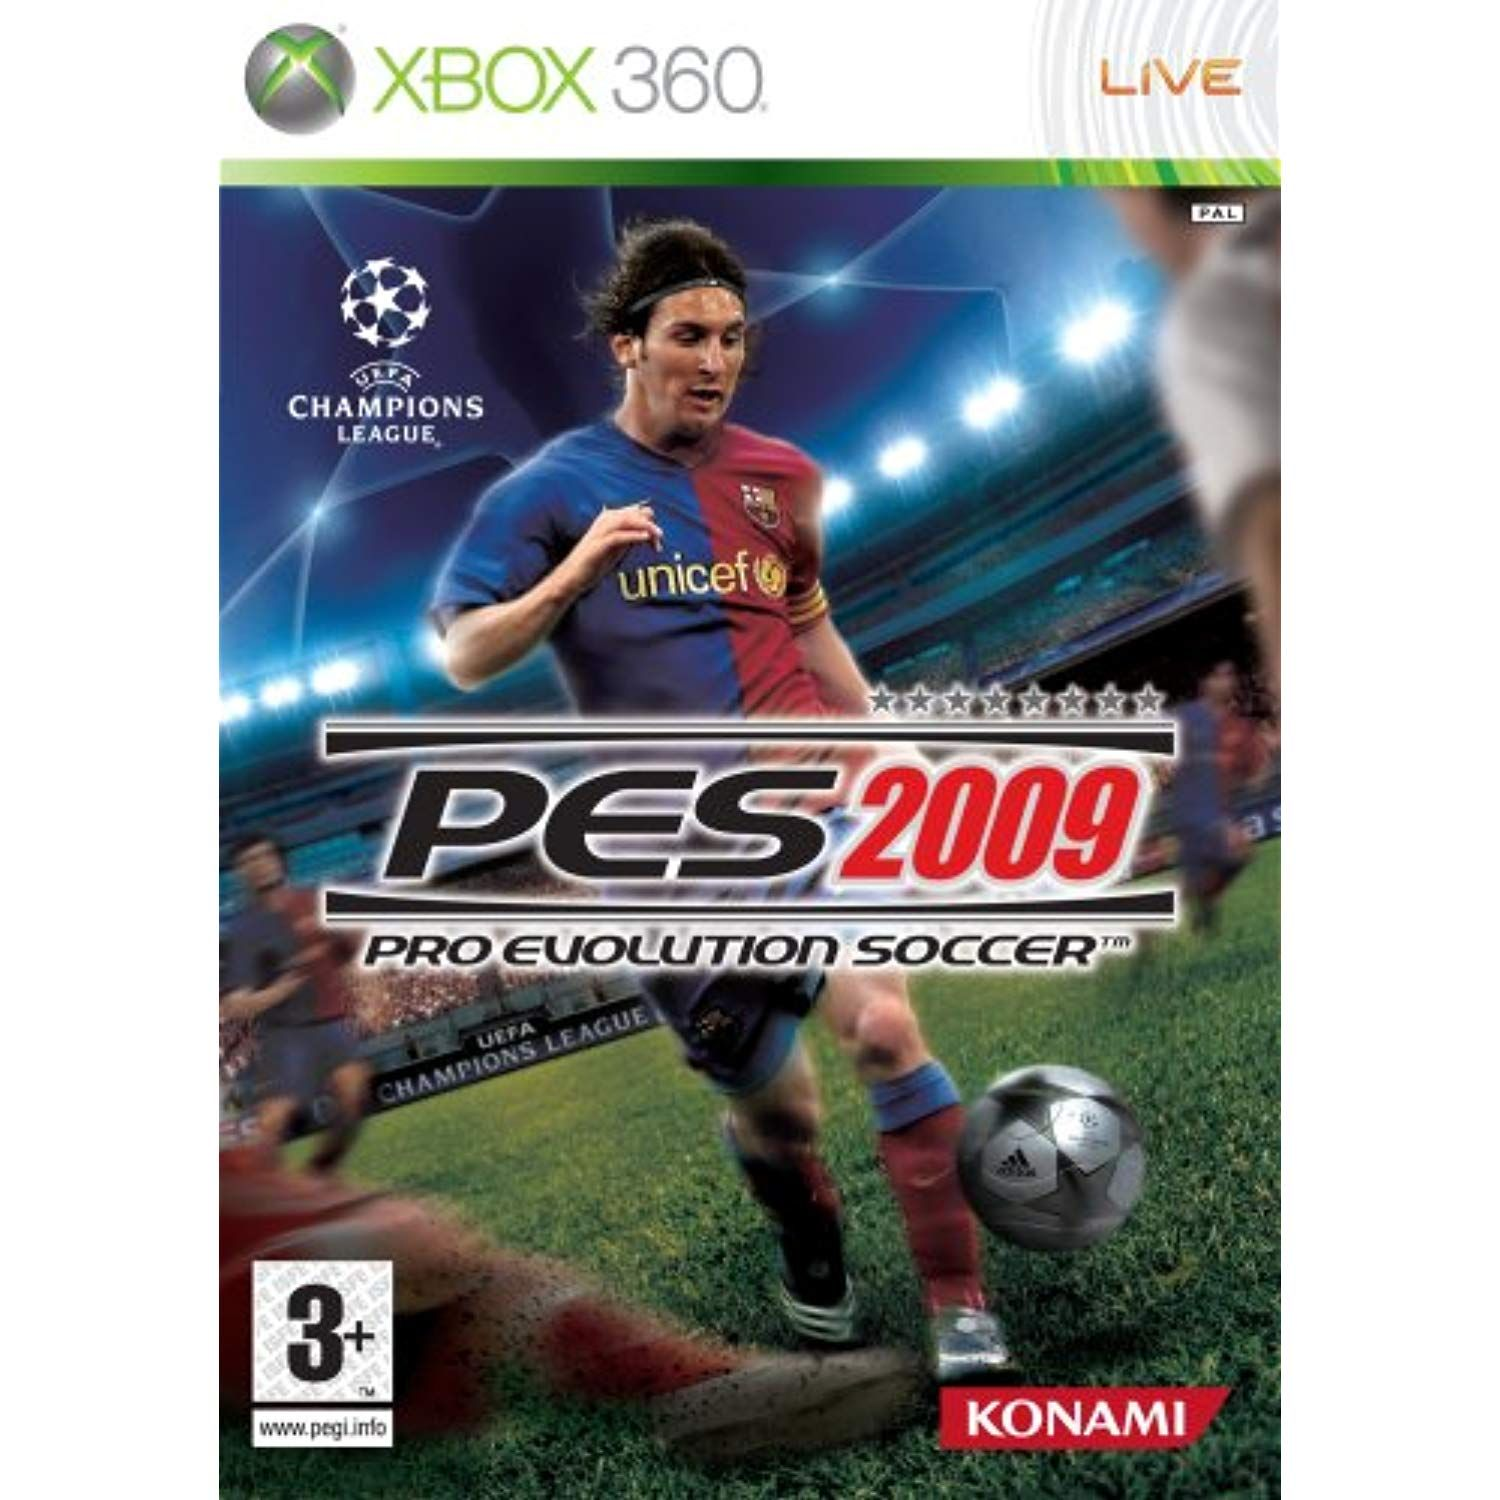 Pro Evolution Soccer 2009 Xbox 360 Read More At The Image Link This Is An Affiliate Link Pro Evolution Soccer Evolution Soccer Pc Computer Games